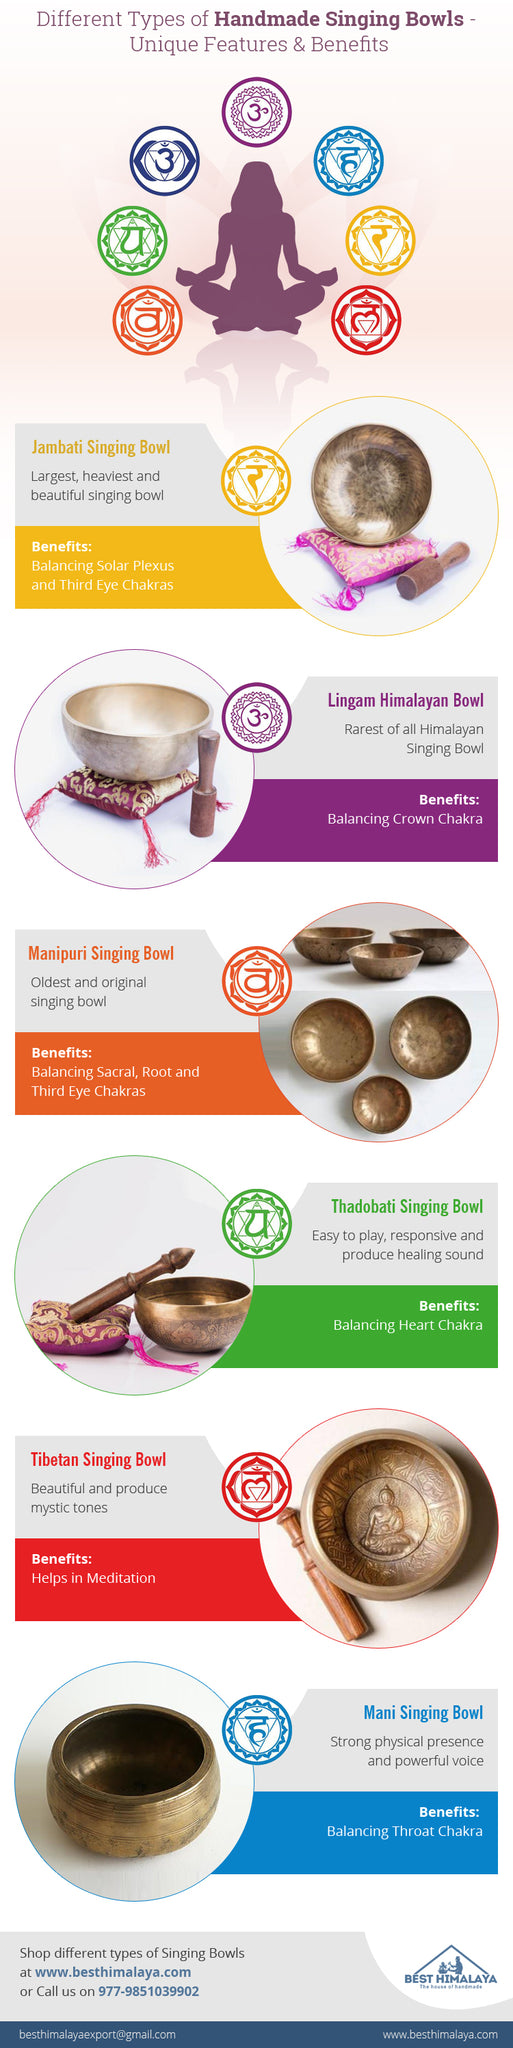 Different Types of Handmade Singing Bowls - Features and Benefits